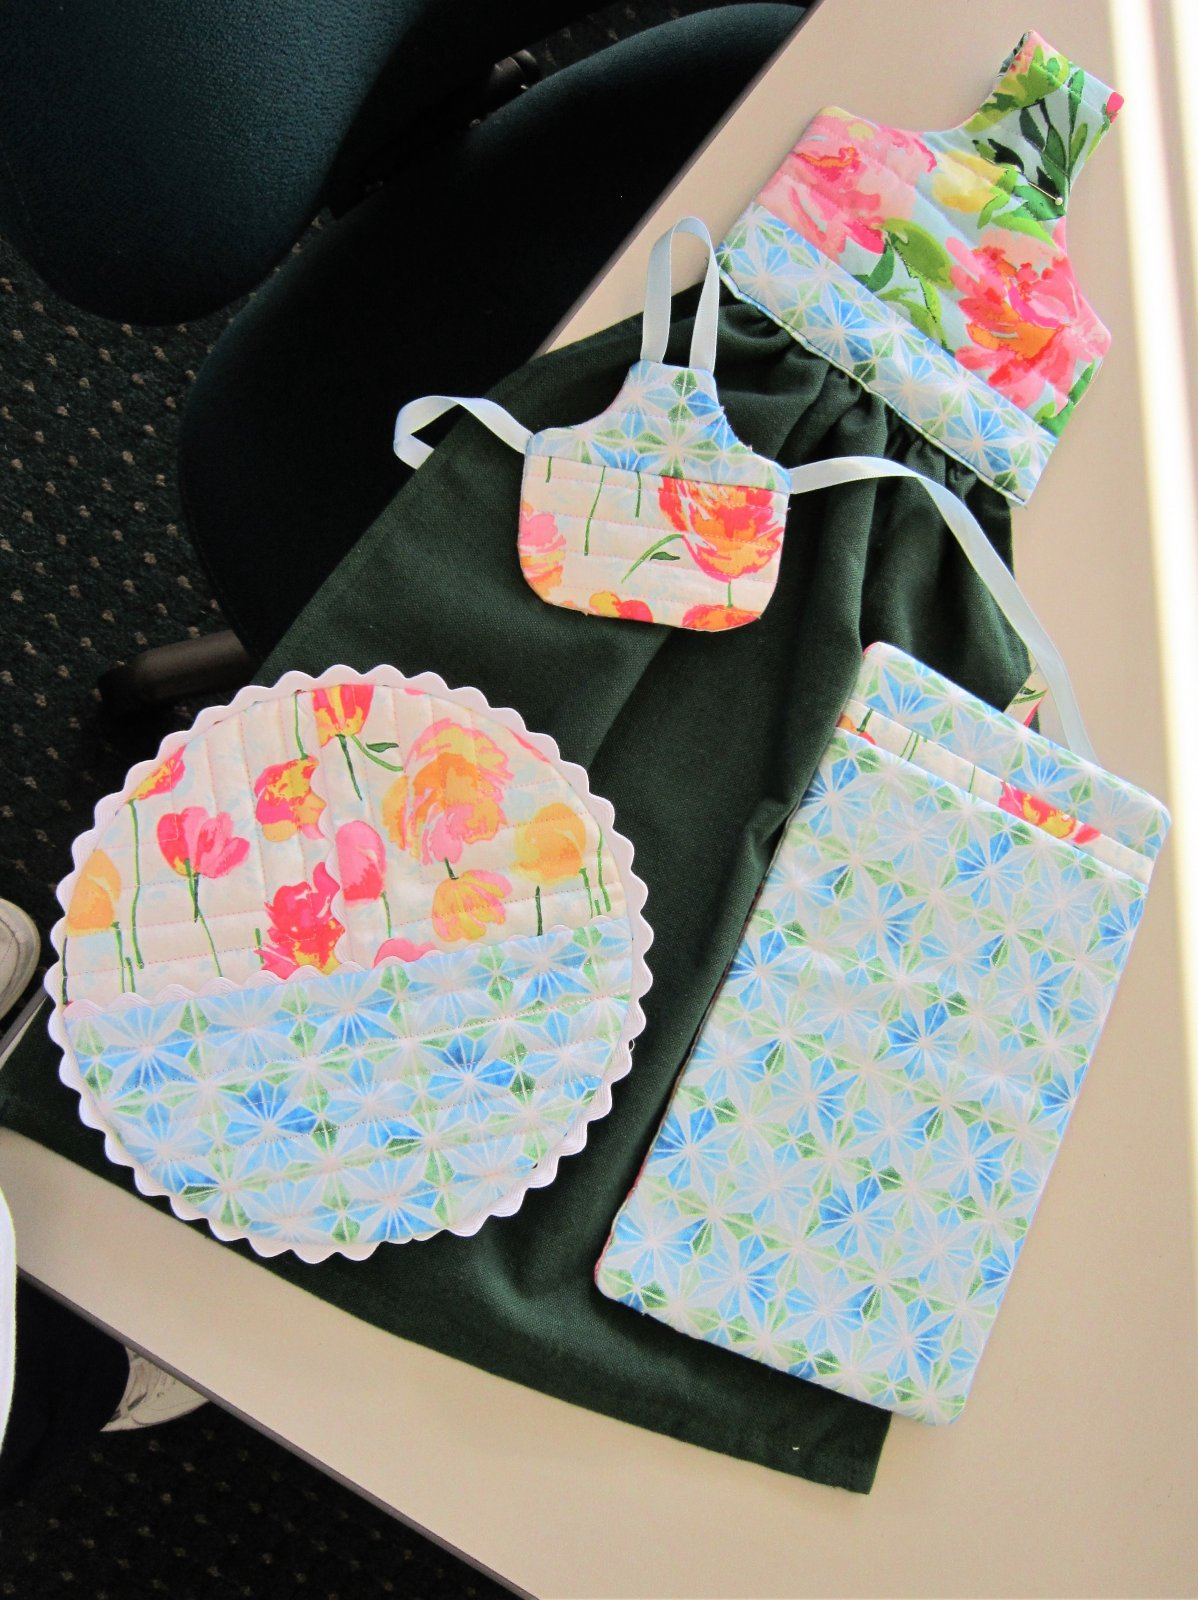 Connie\'s Quick Gifts Dec 6 2017 10:30-2:00 In the Hoop Kitchen Set